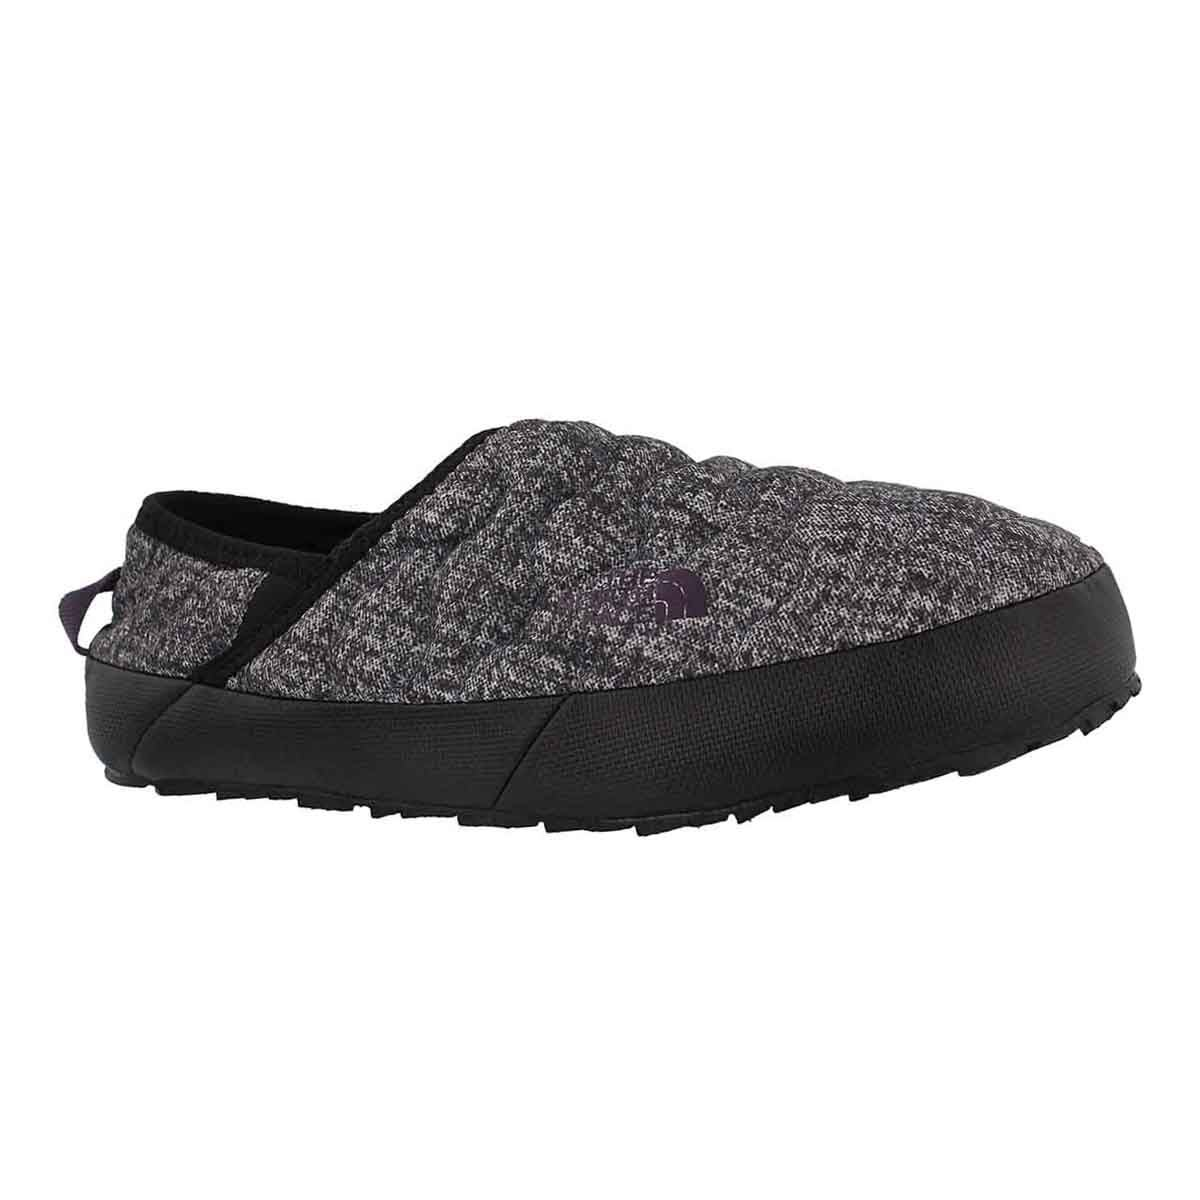 Women's THERMOBALL TRACTION MULE IV bk slippers